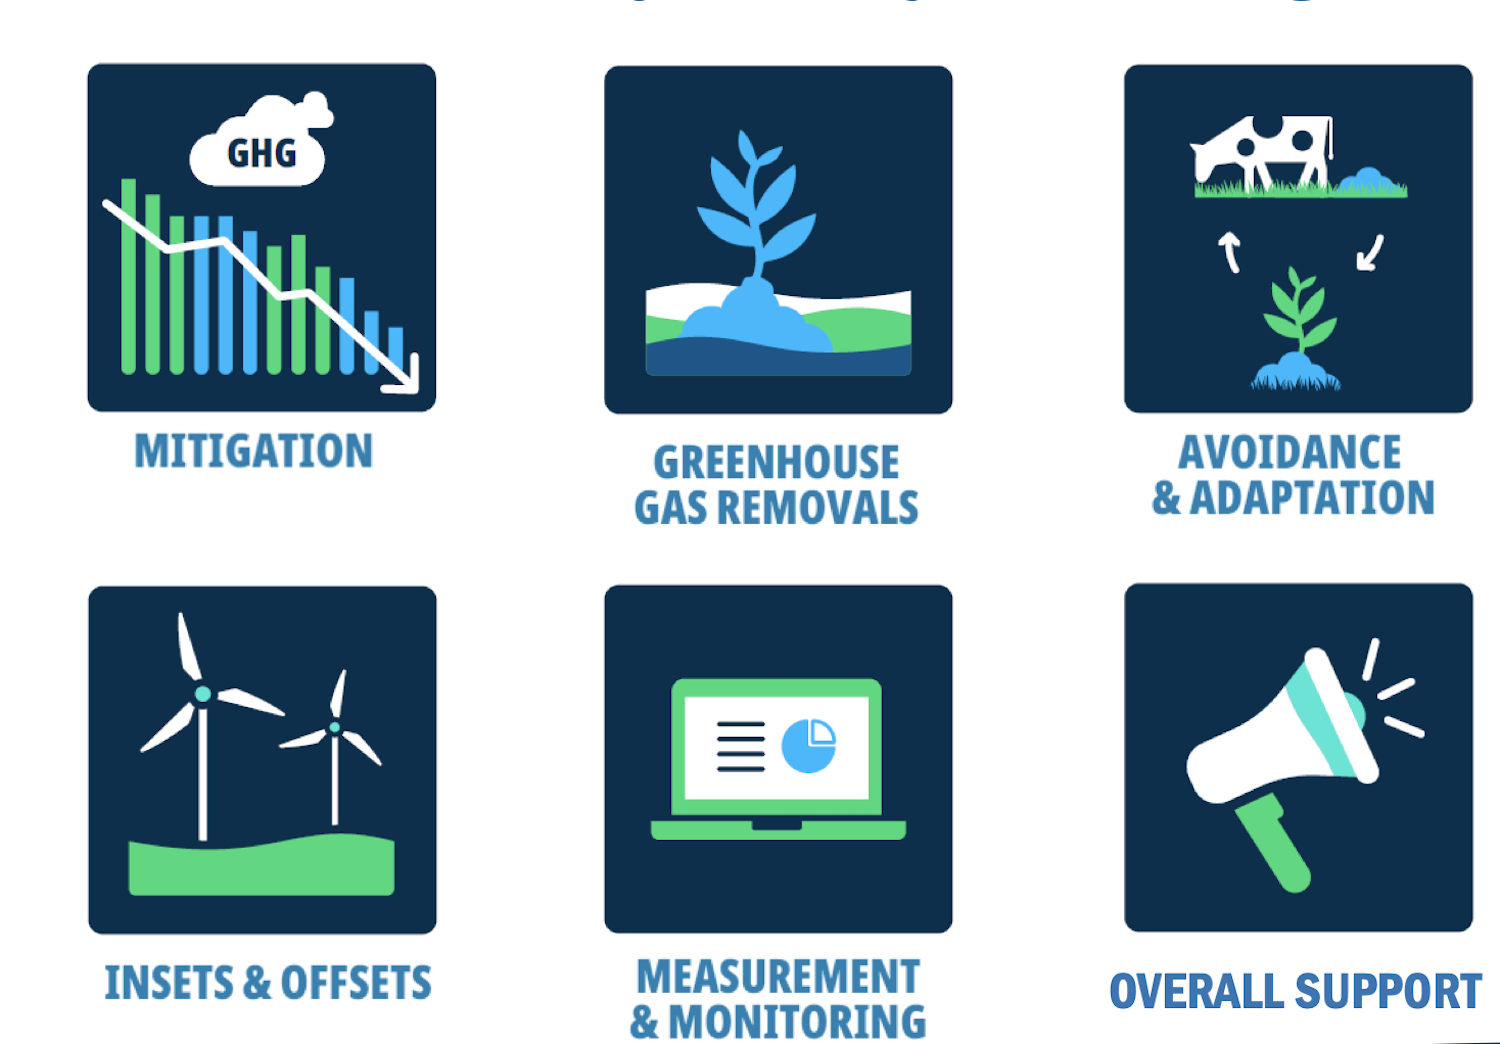 Infographic details different emissions reductions strategies in global dairy